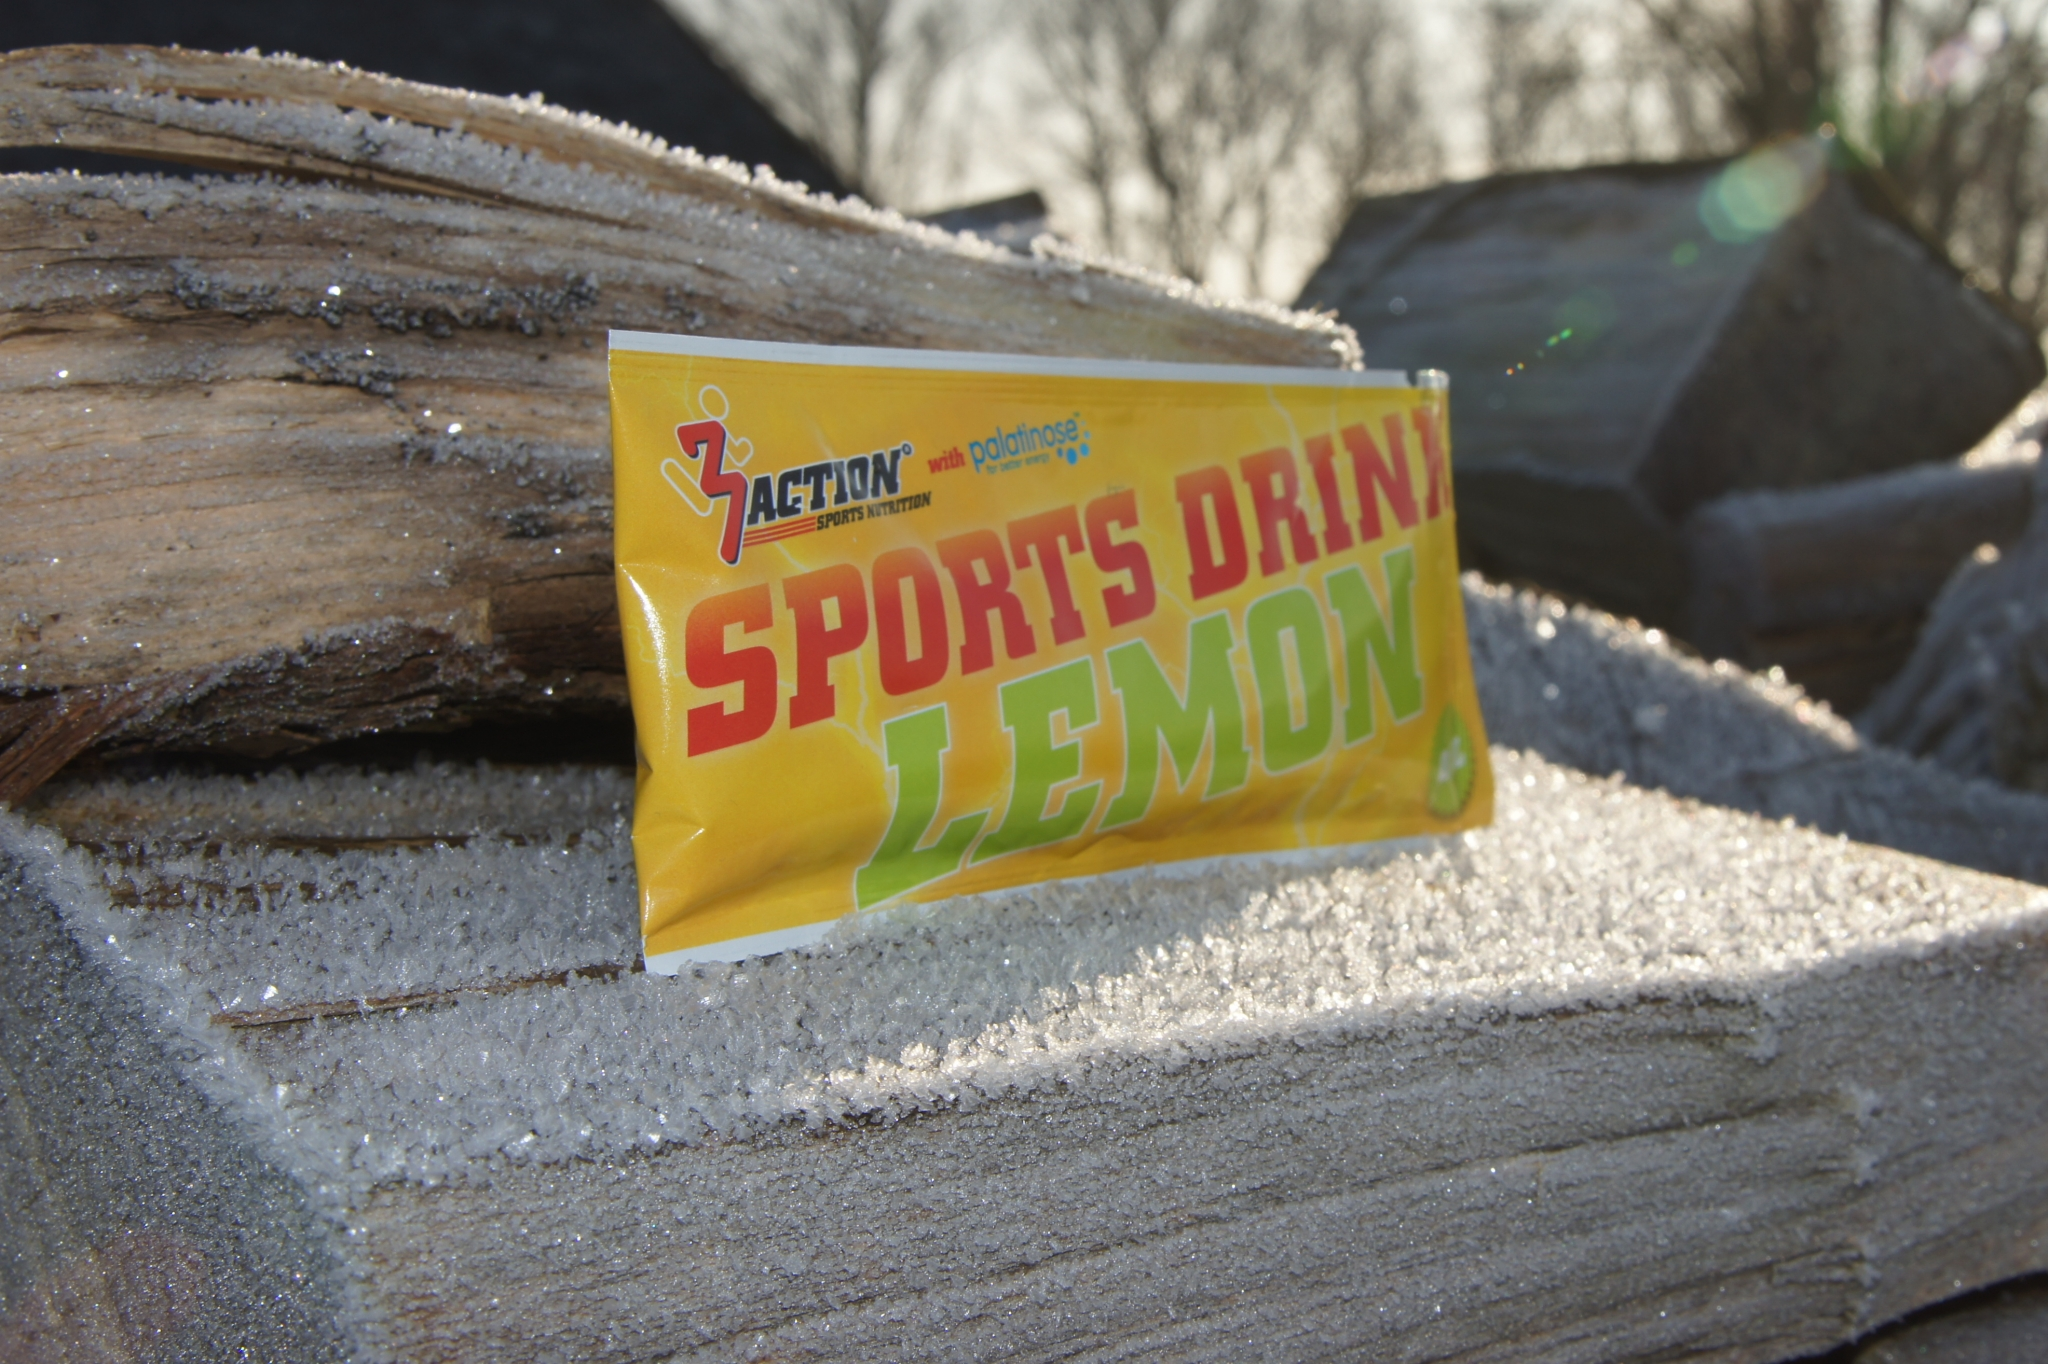 wielrenblad_buit_van_de_week_3_action_hot_cold_sport_drink_3